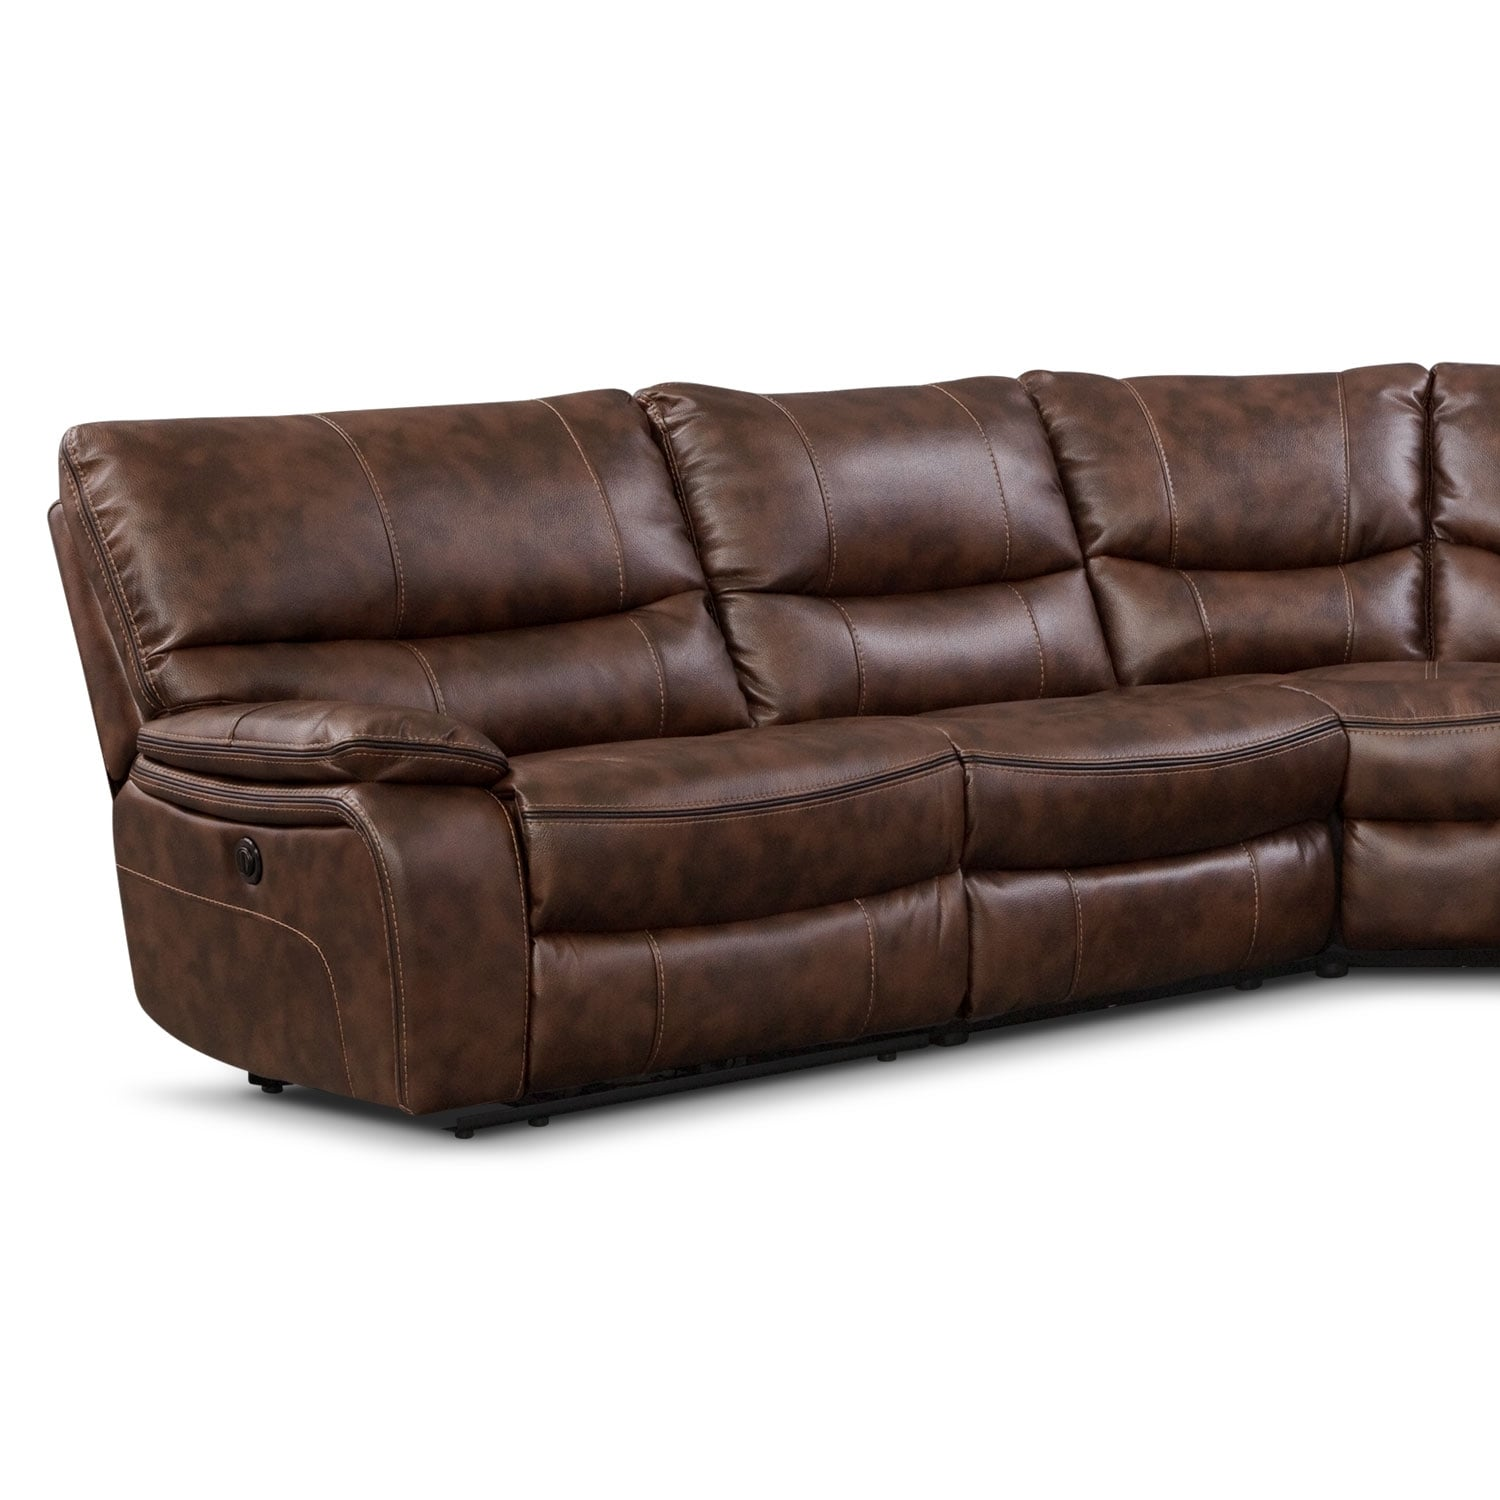 Orlando 5-Piece Power Reclining Sectional